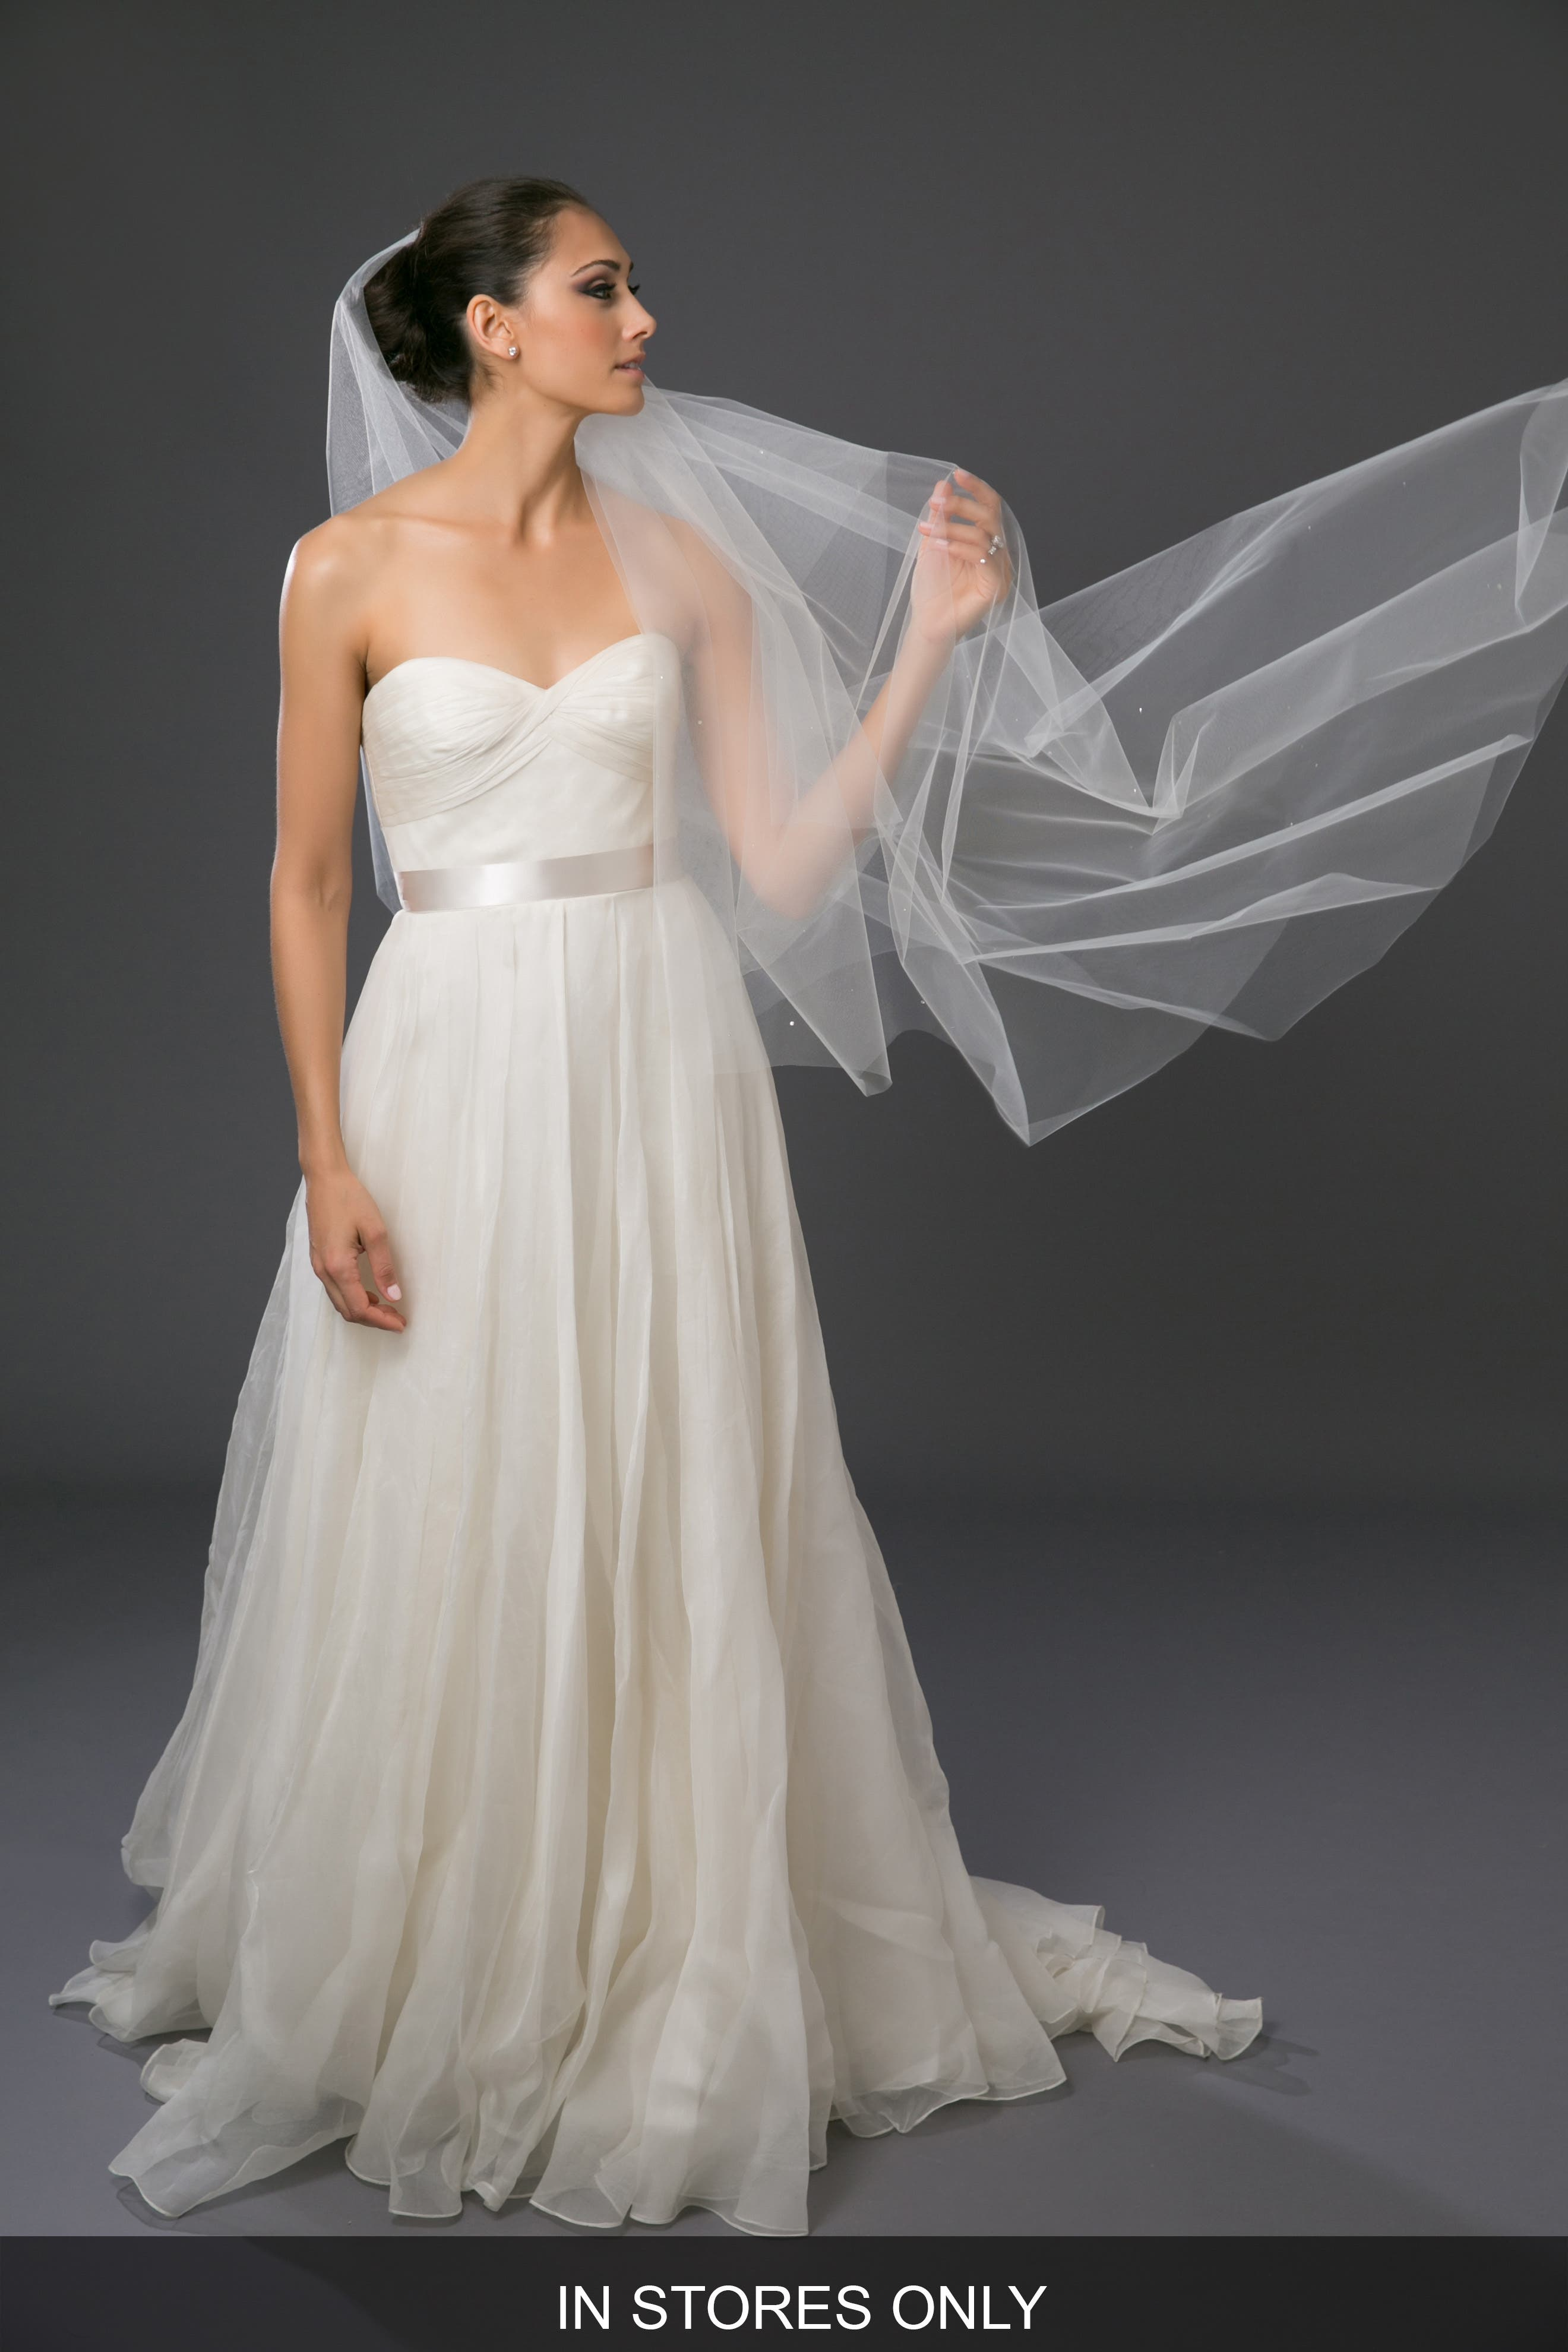 'Chakra' Circle Cut Waltz Length Veil,                             Alternate thumbnail 7, color,                             LIGHT IVORY